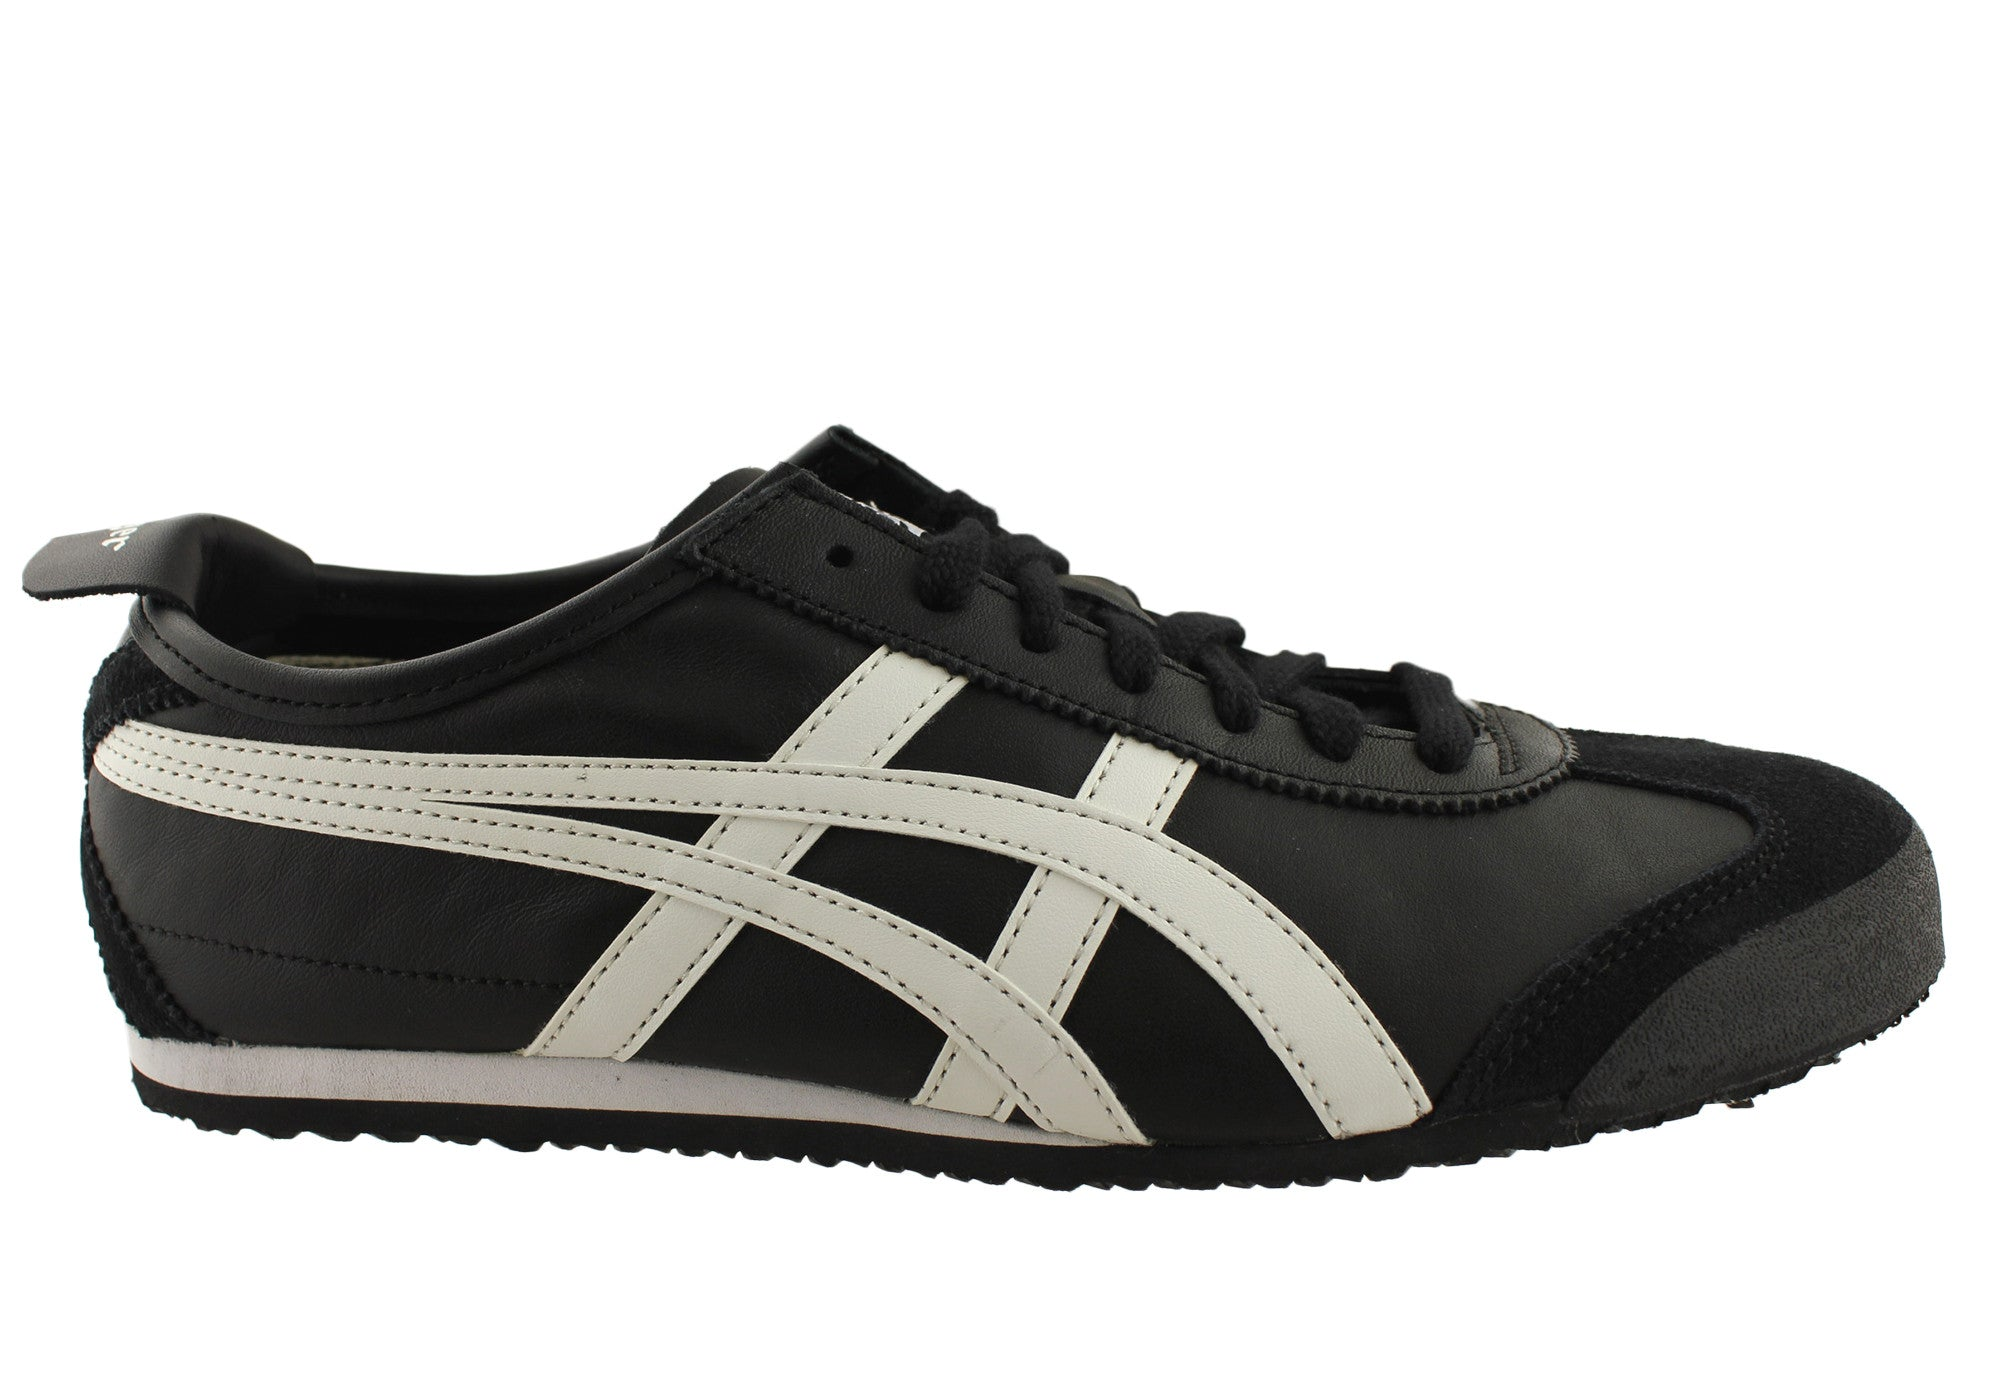 on sale d121e 34e88 Asics Onitsuka Tiger Mexico 66 Mens Leather Lace Up Casual Shoes | Brand  House Direct